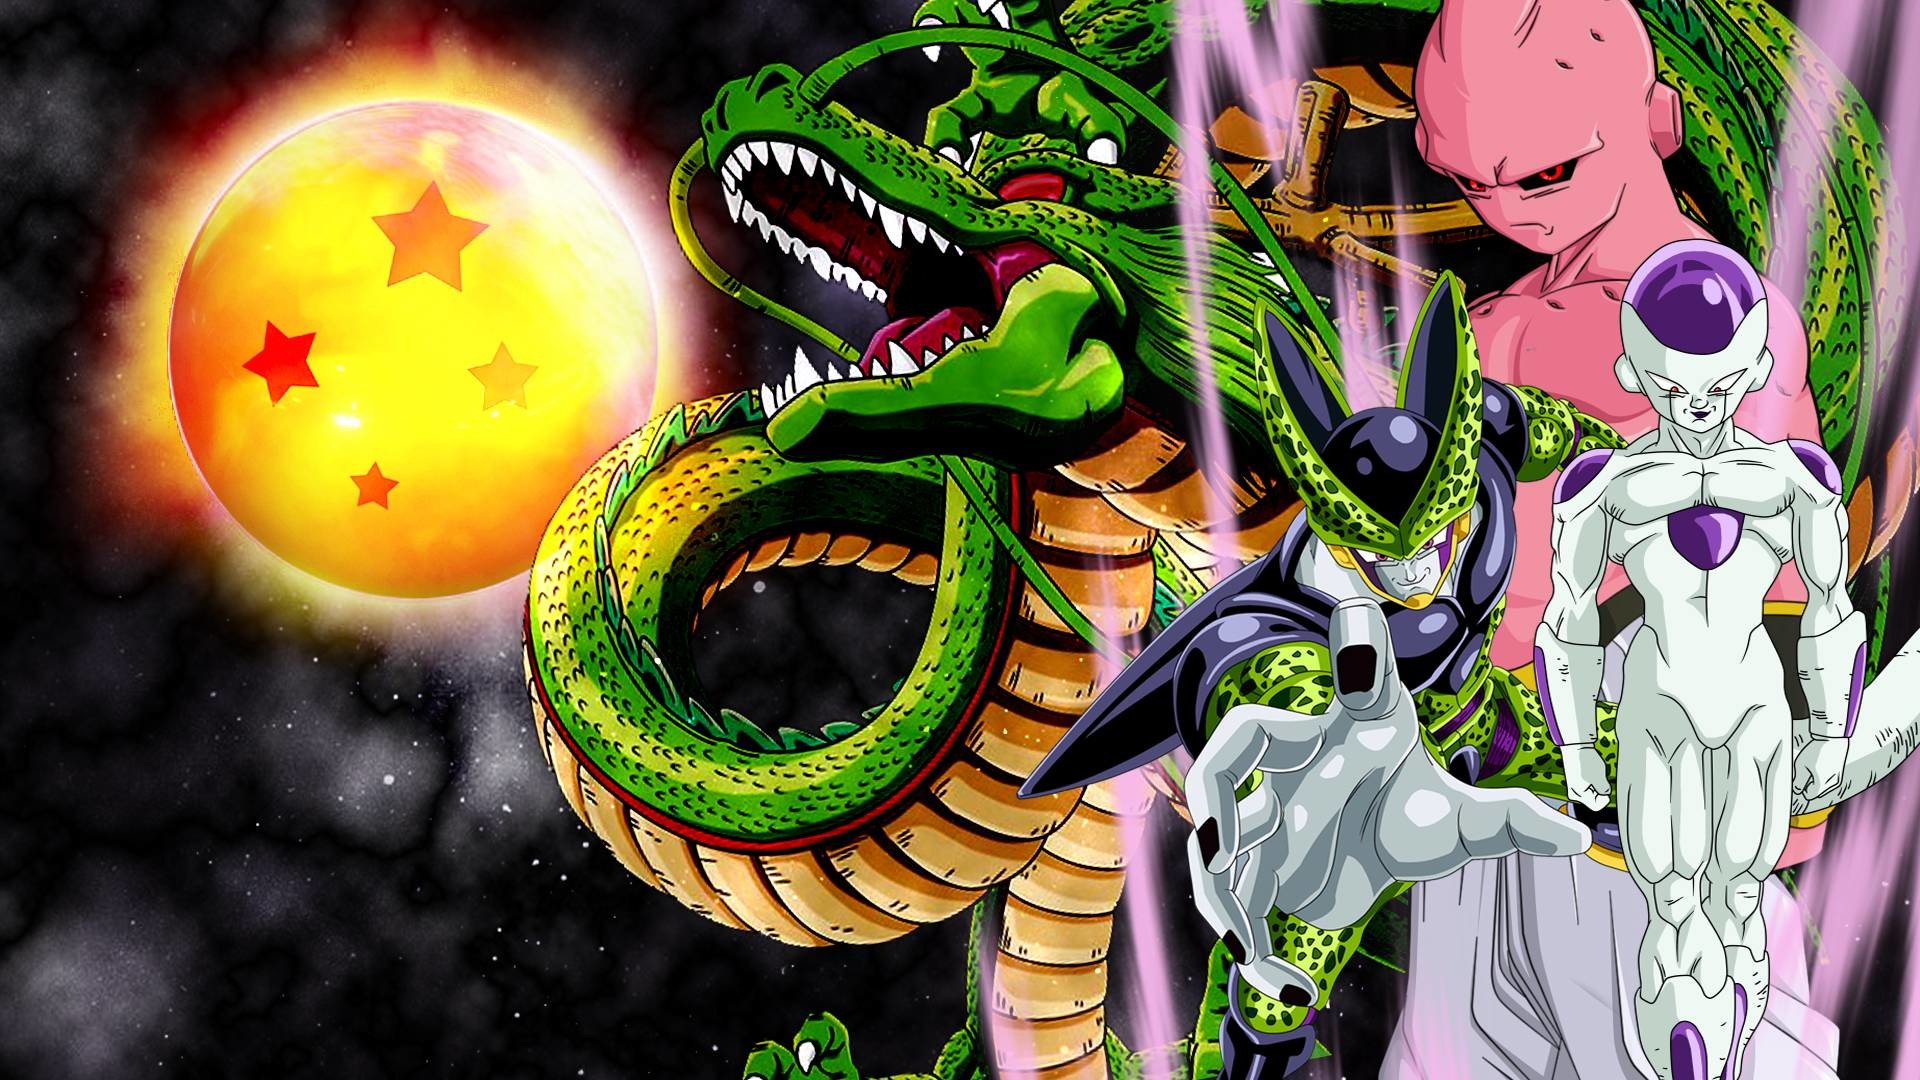 1920x1080 Frieza, cell and buu wallpaper by vuLC4no on DeviantArt